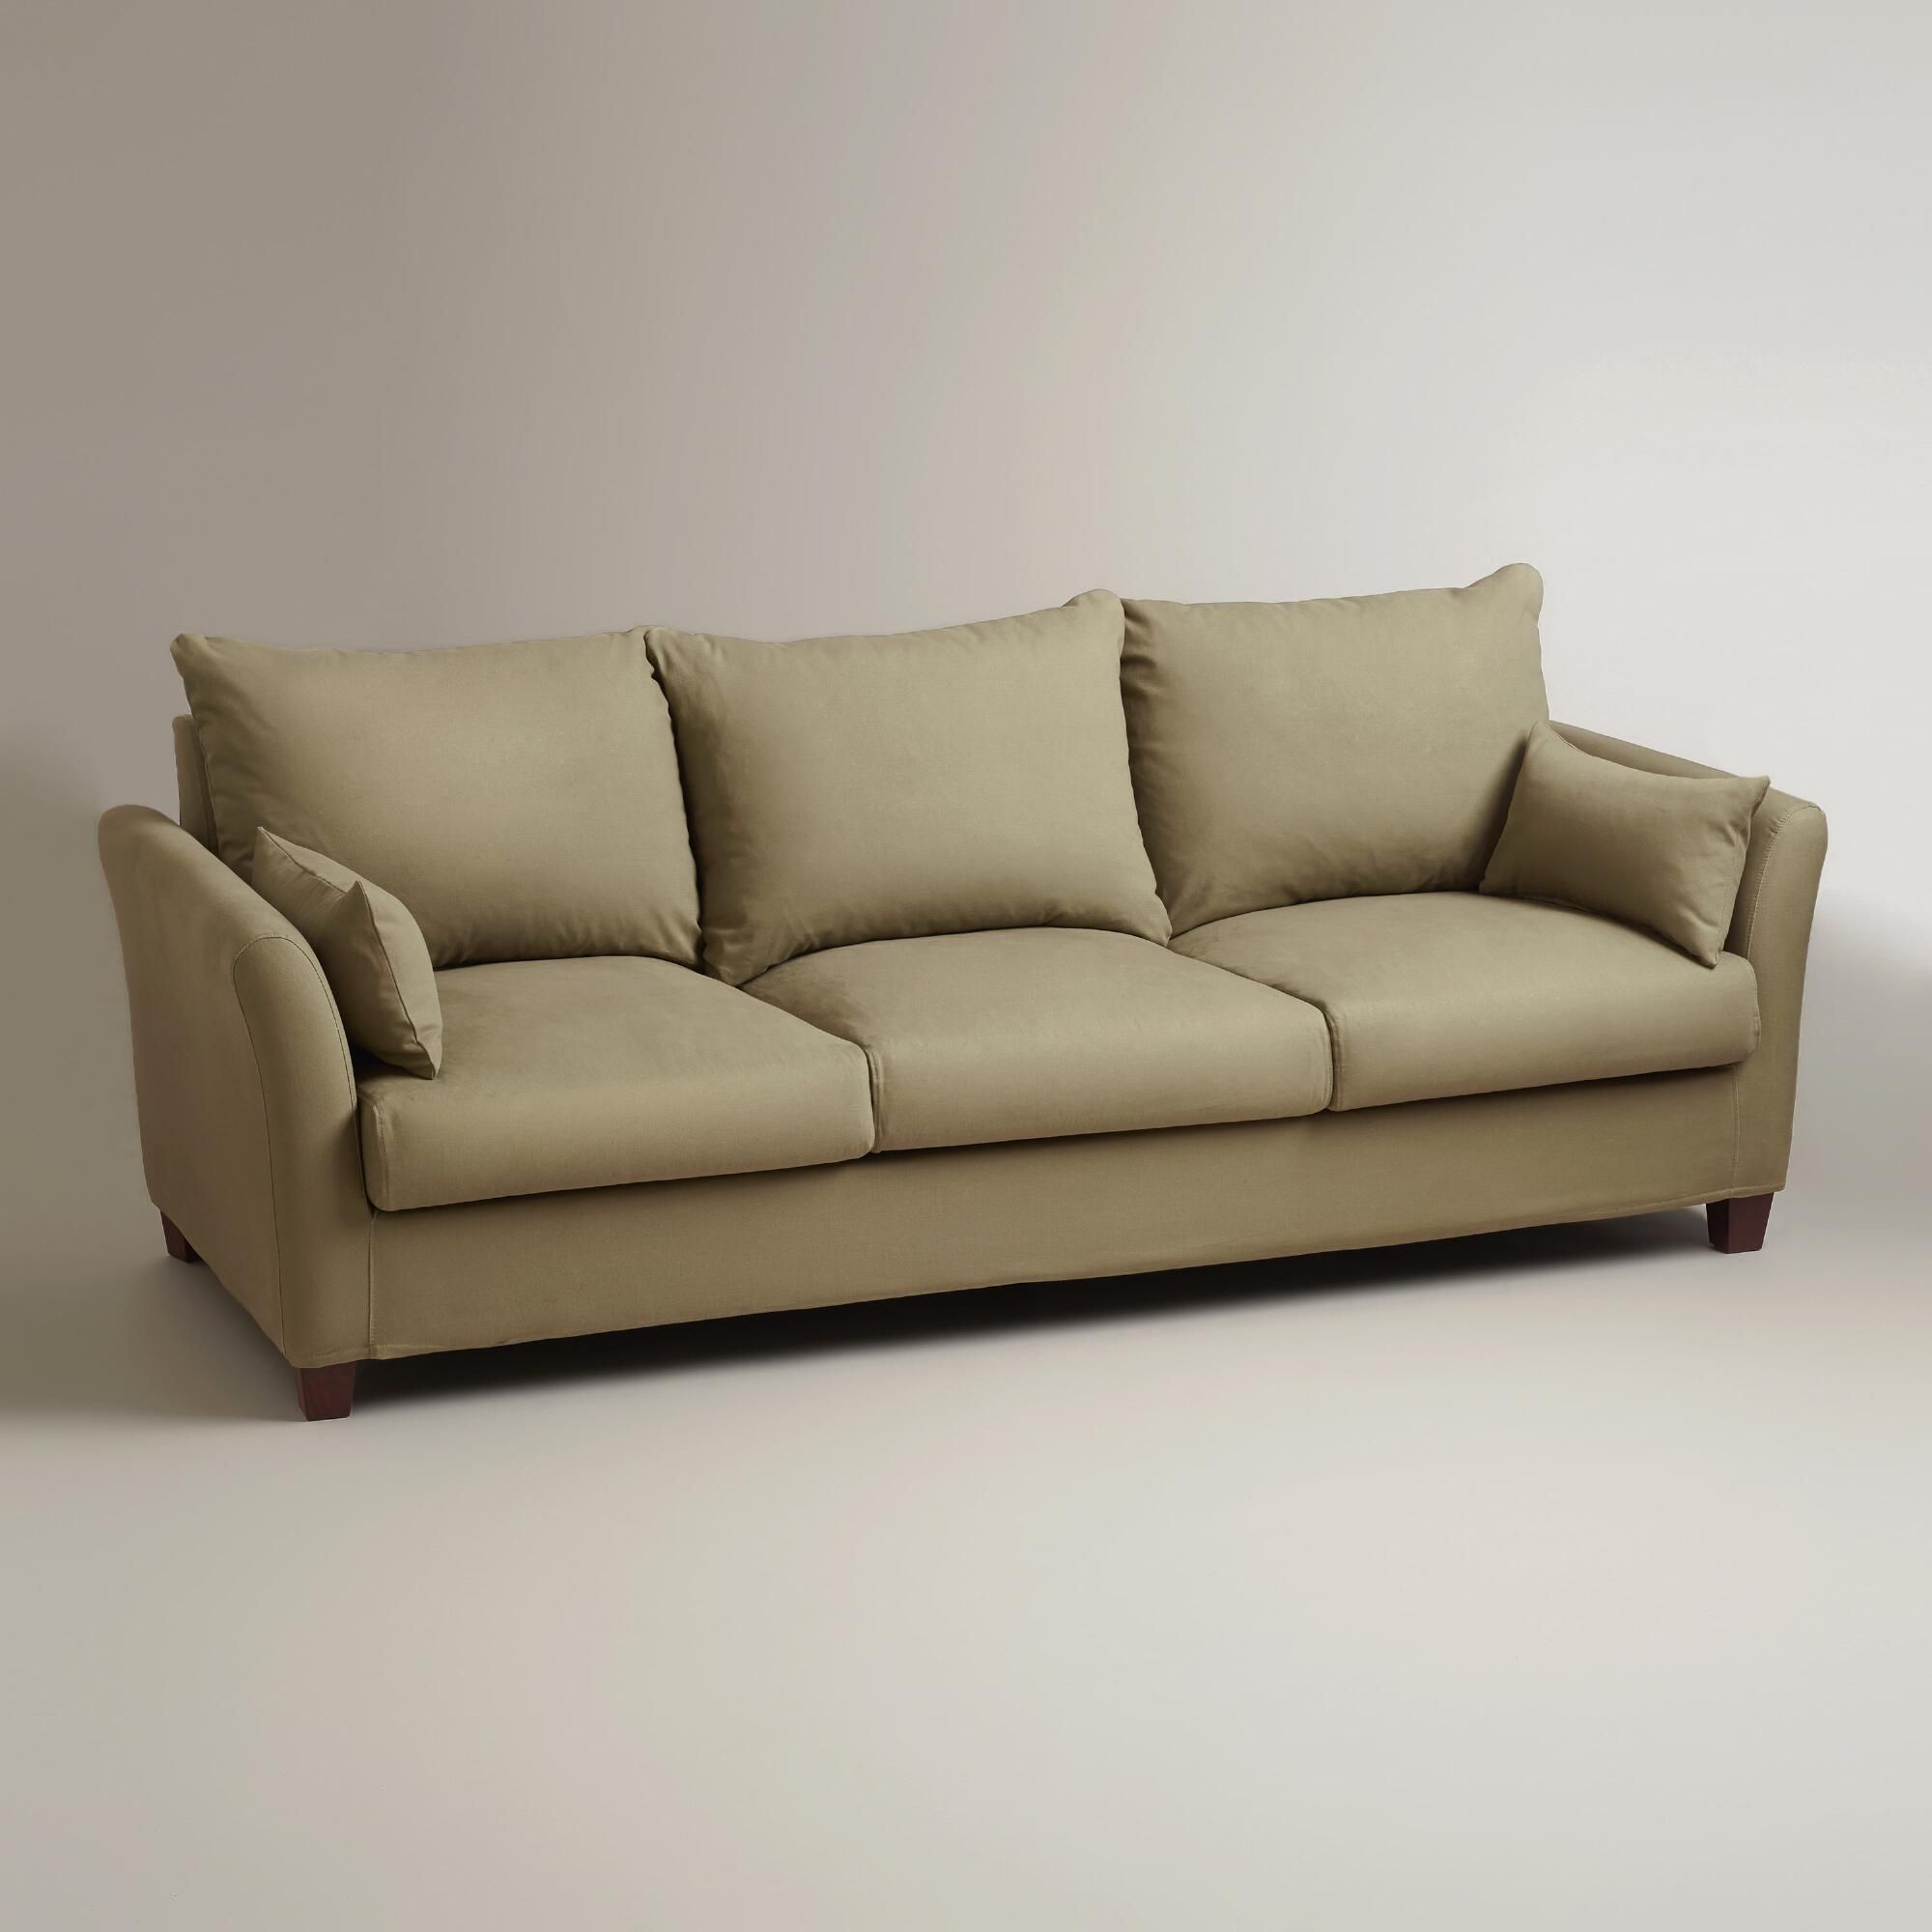 Sage Luxe 3 Seat Sofa Slipcover Designed To Fit Like A Glove Dry Clean Only 99 11 12 15